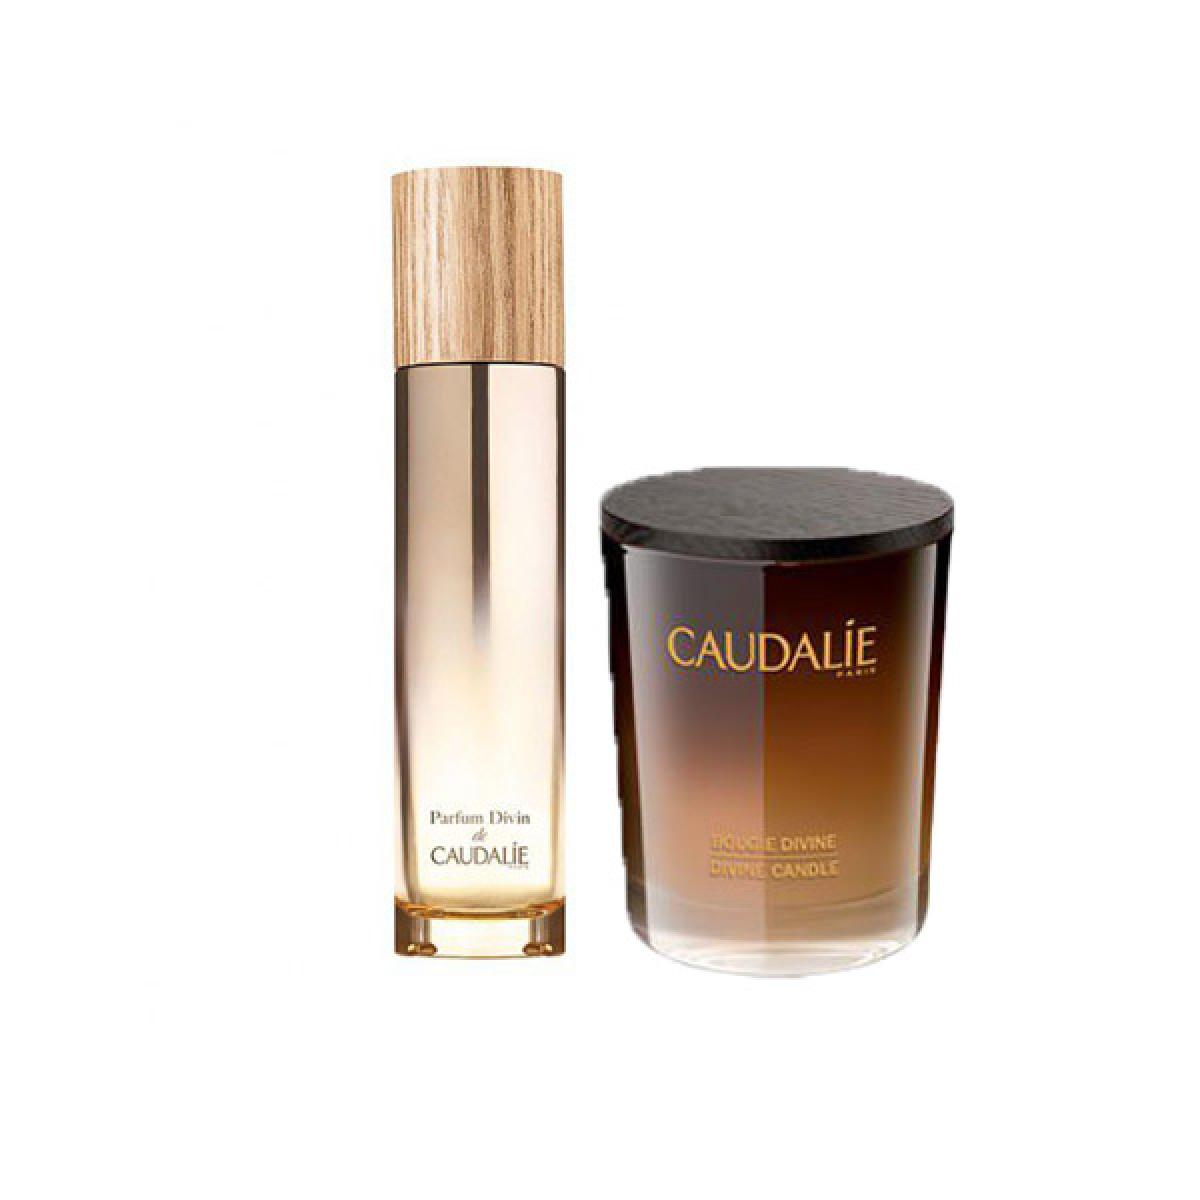 caudalie coffret cadeau divin parfum bougie parapharmacie pharmarket. Black Bedroom Furniture Sets. Home Design Ideas